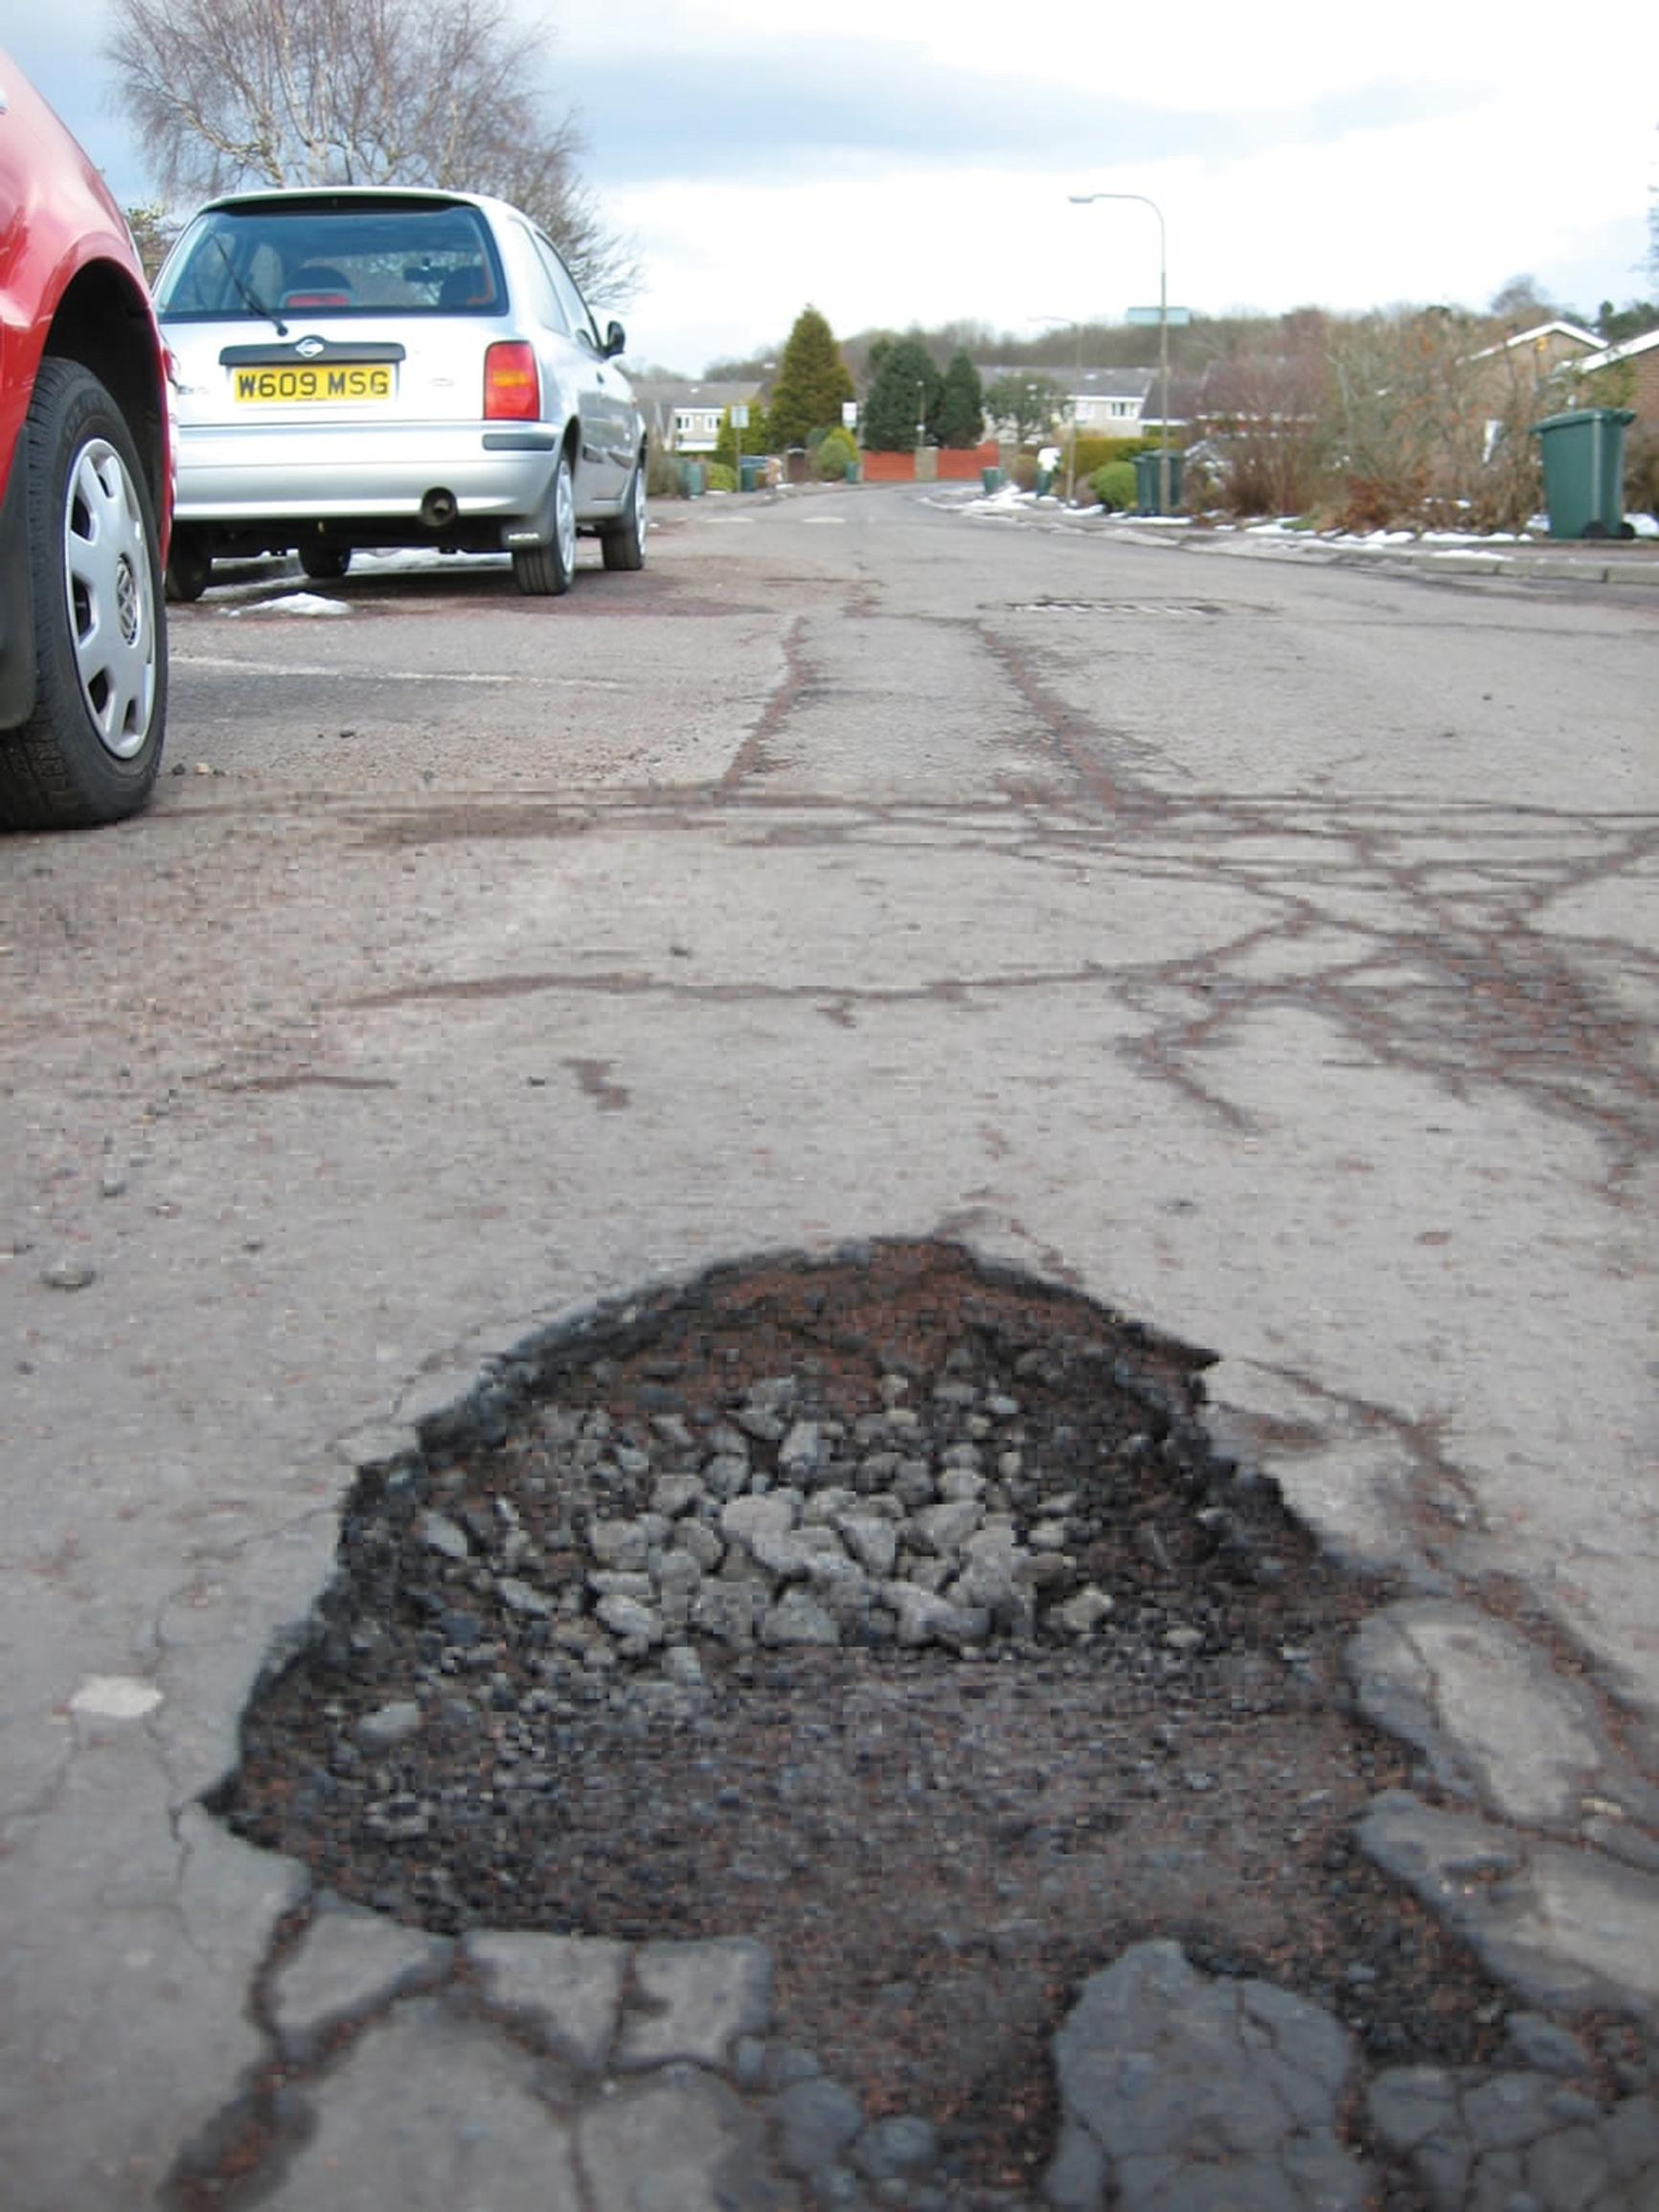 Councils could do more to repair roads and fill potholes if the government reinvested 2 pence per litre of fuel duty into local road maintenance, suggests the LGA